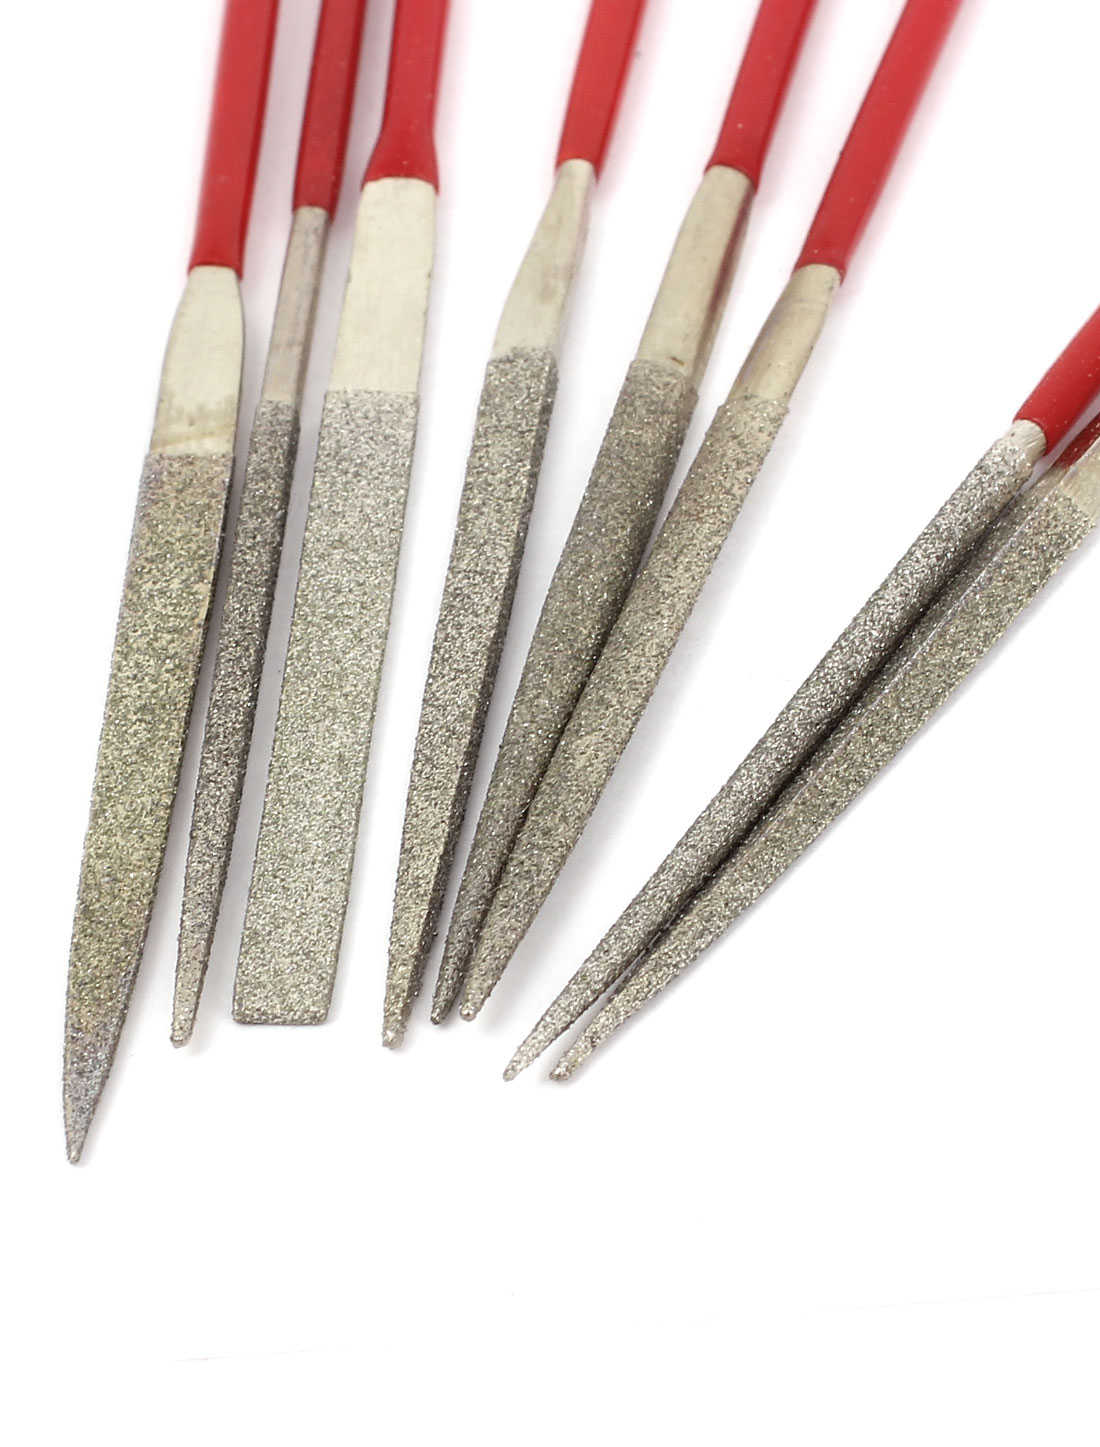 8Pcs 2mmx100mm Diamond Coated Flat Needle Files Jeweler Carving Stone Craft Tool